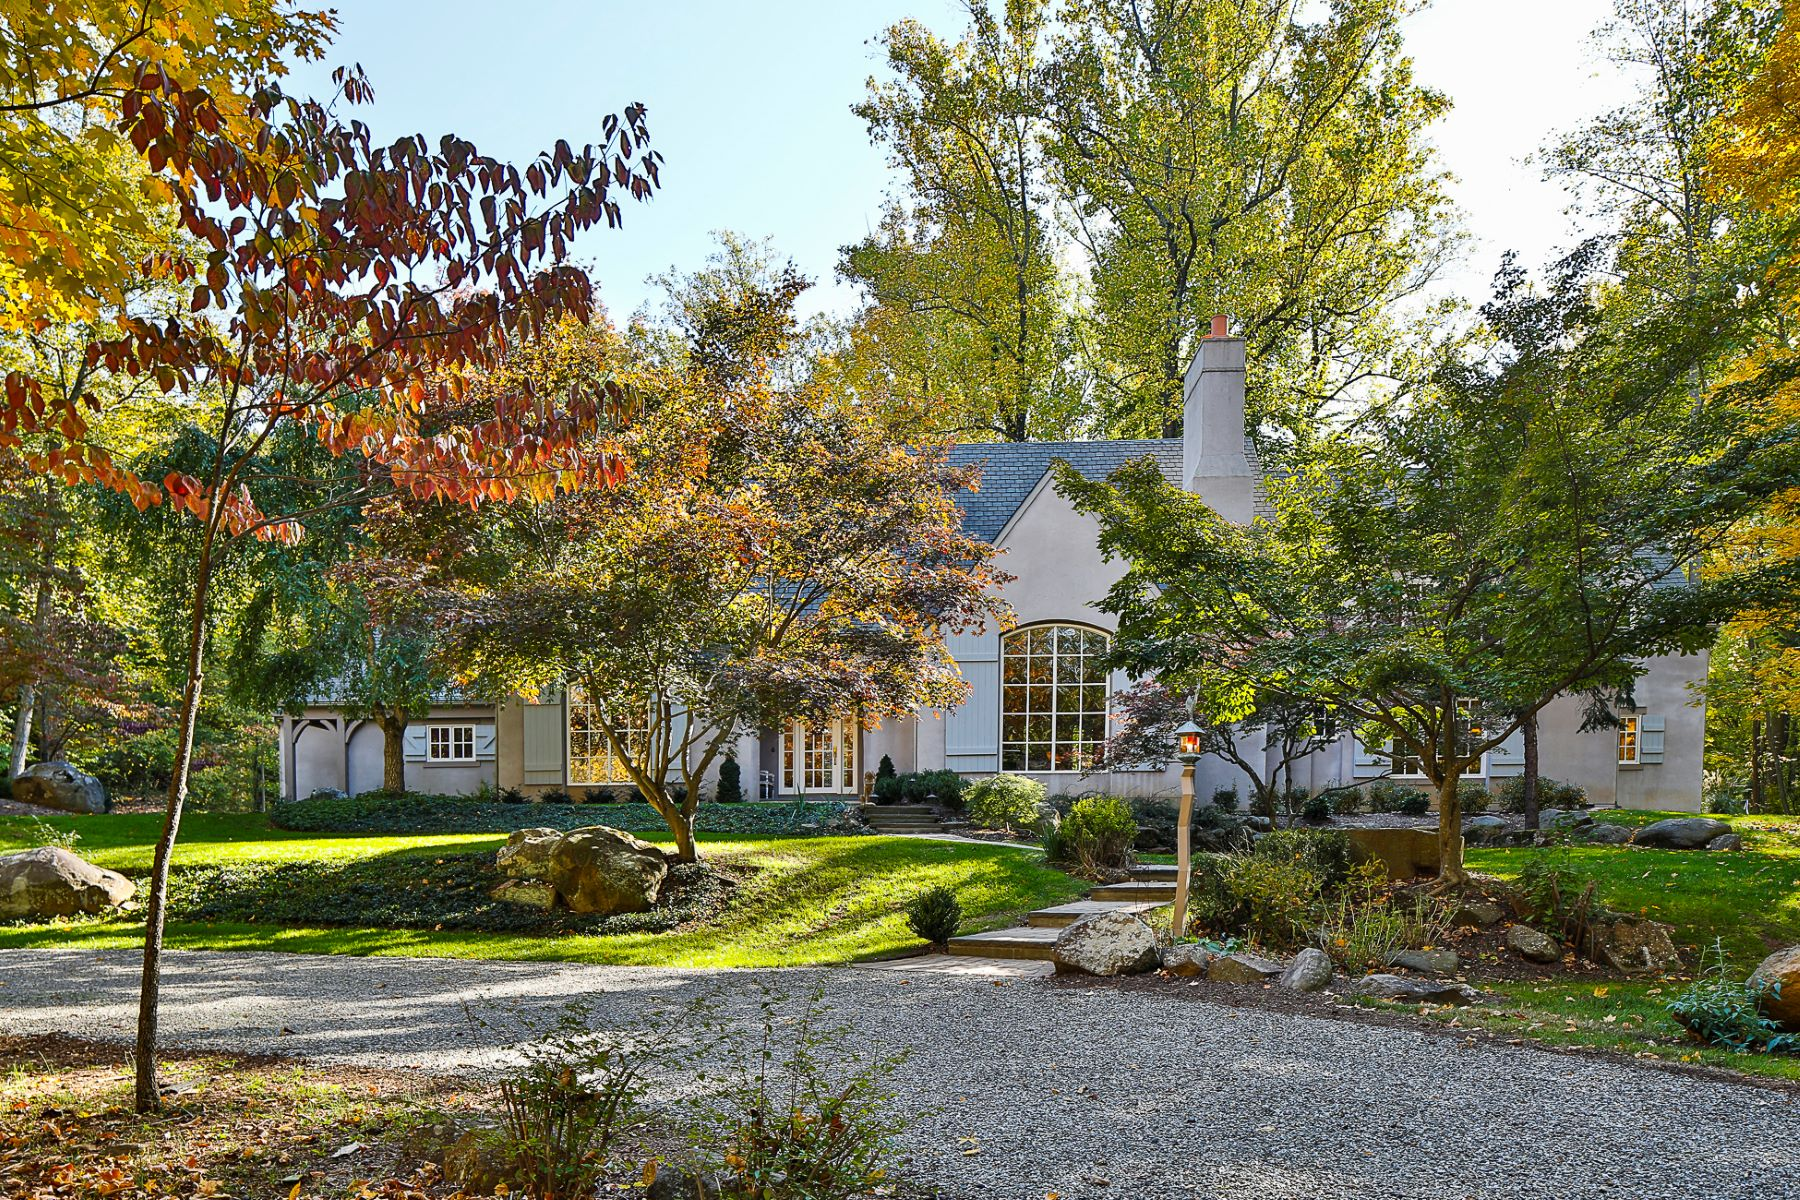 Single Family Homes for Sale at Romantic, Wooded Views and Sophisticated Style 316 Cherry Valley Road, Princeton, New Jersey 08540 United States